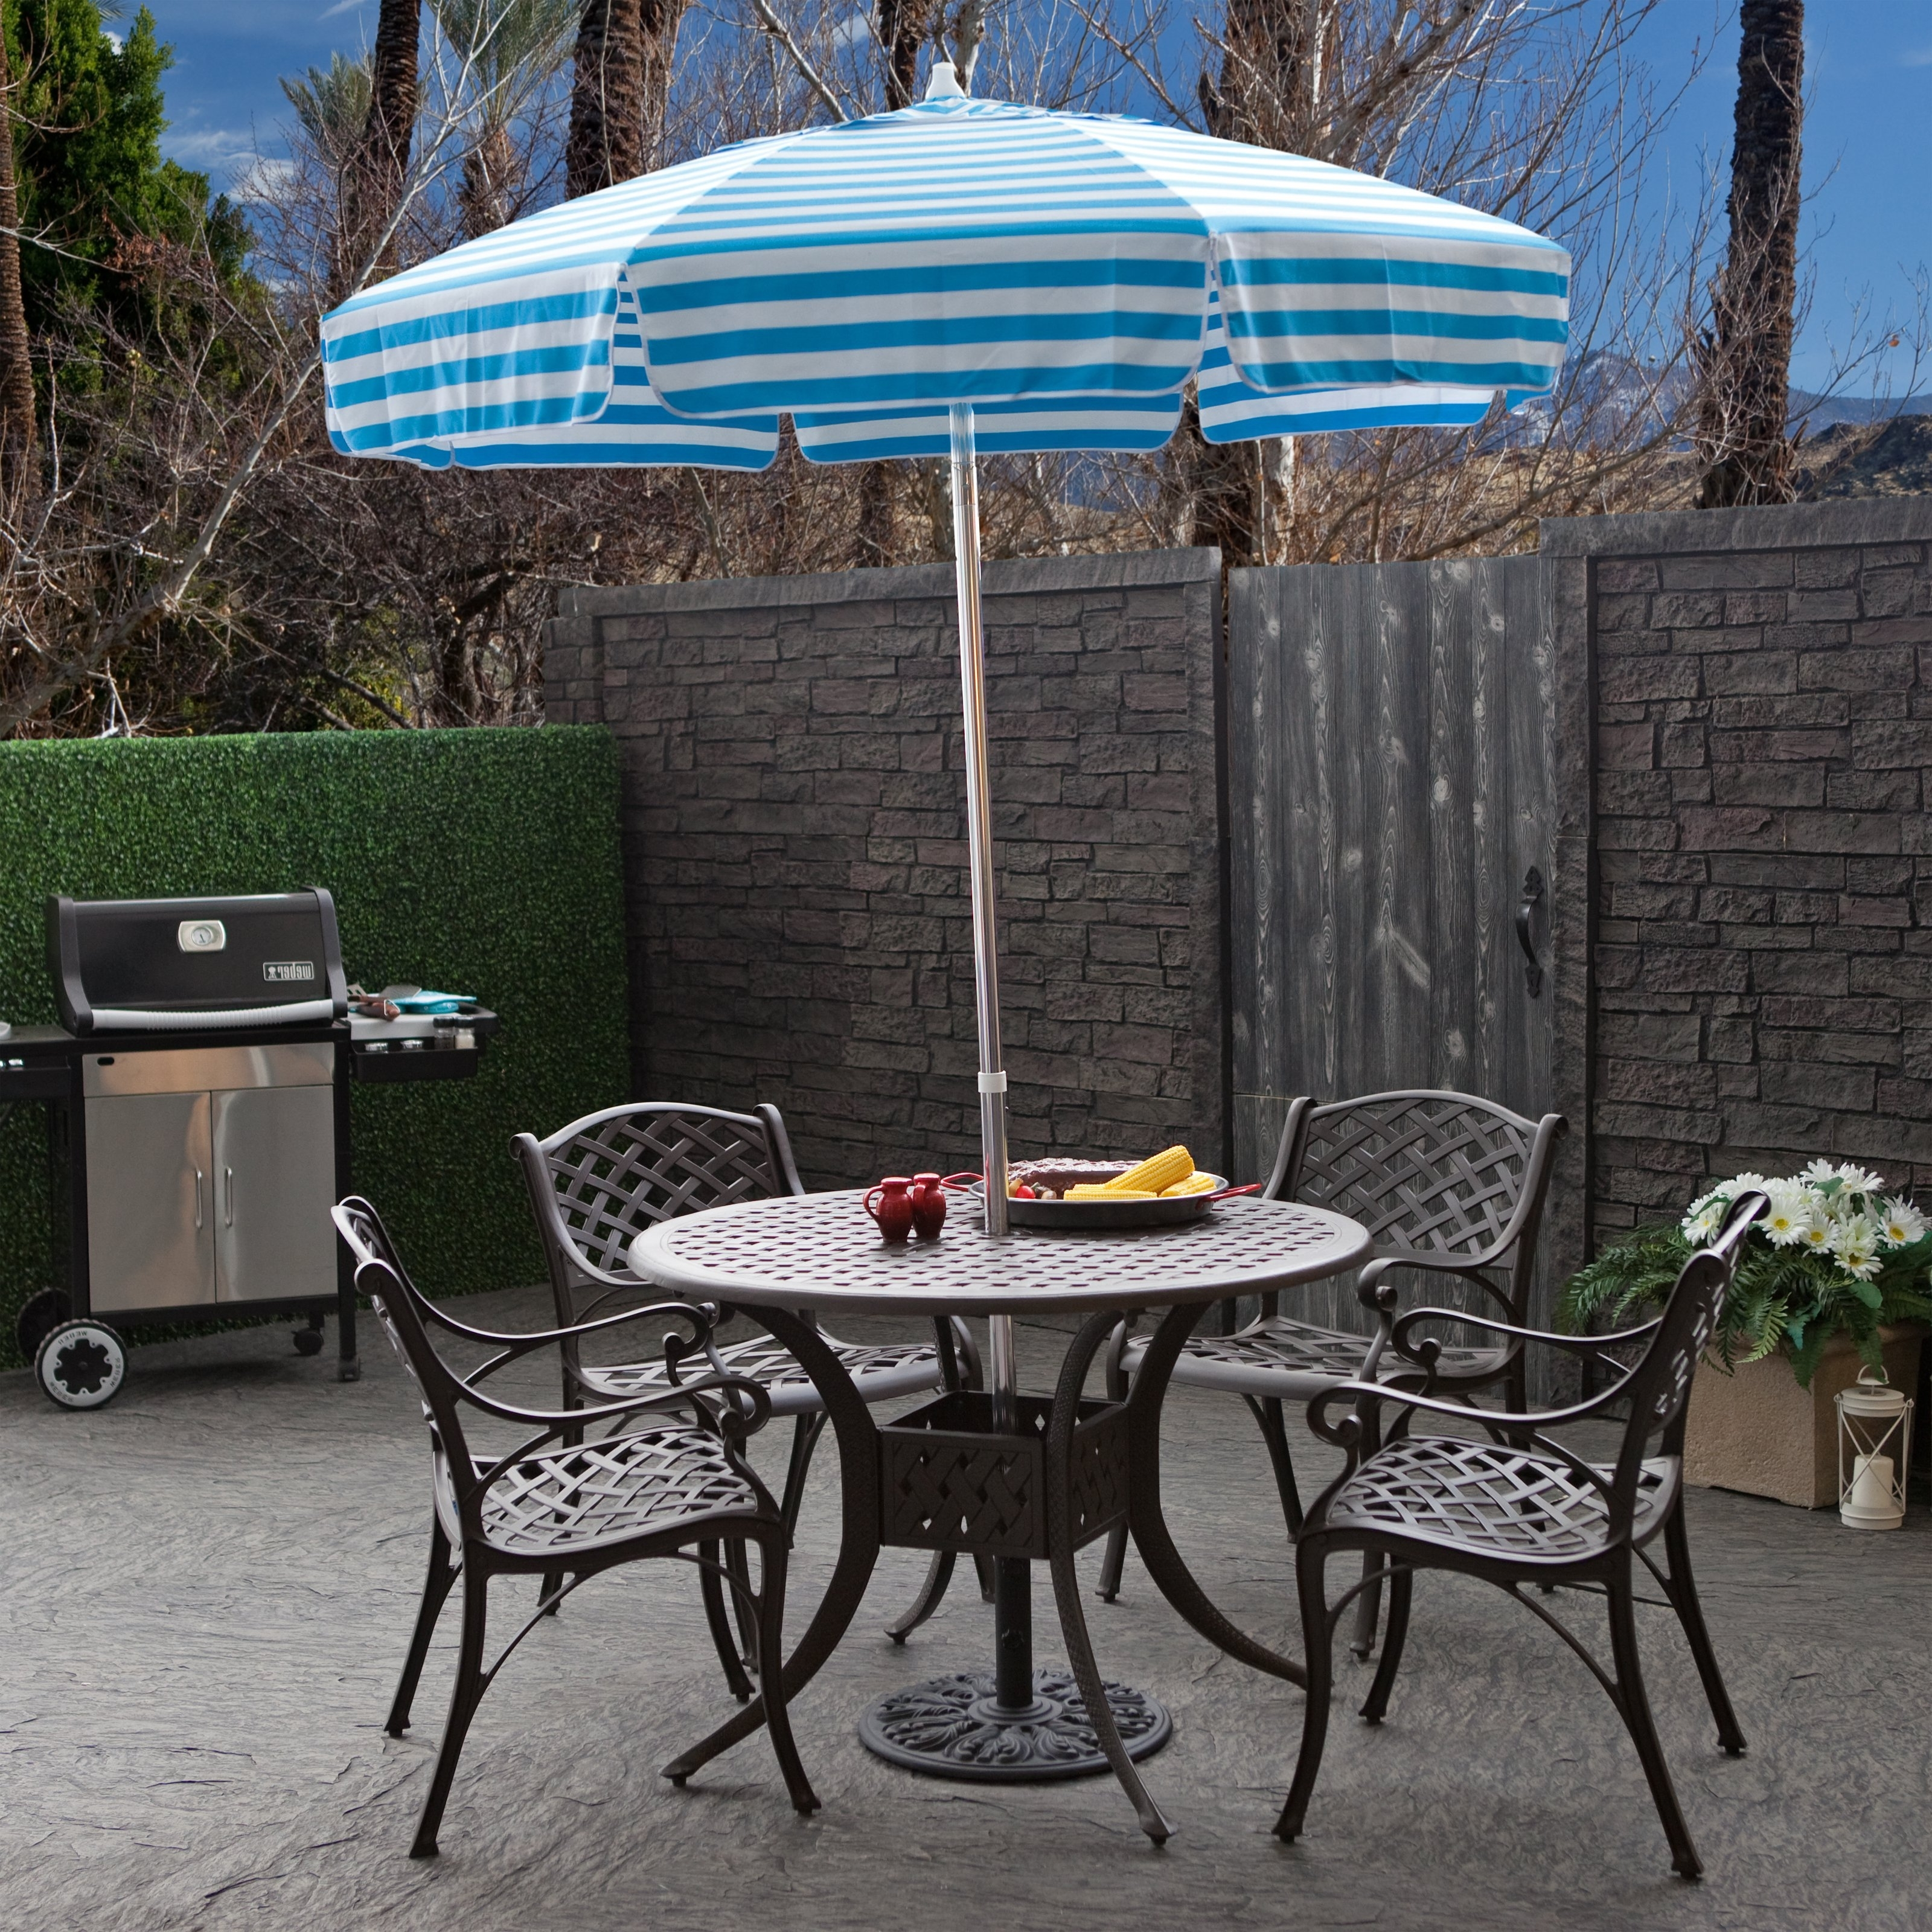 Incredible Patio Table Umbrellas Destinationgear 6 Ft Aluminum With Regard To 2019 Small Patio Tables With Umbrellas (View 6 of 20)